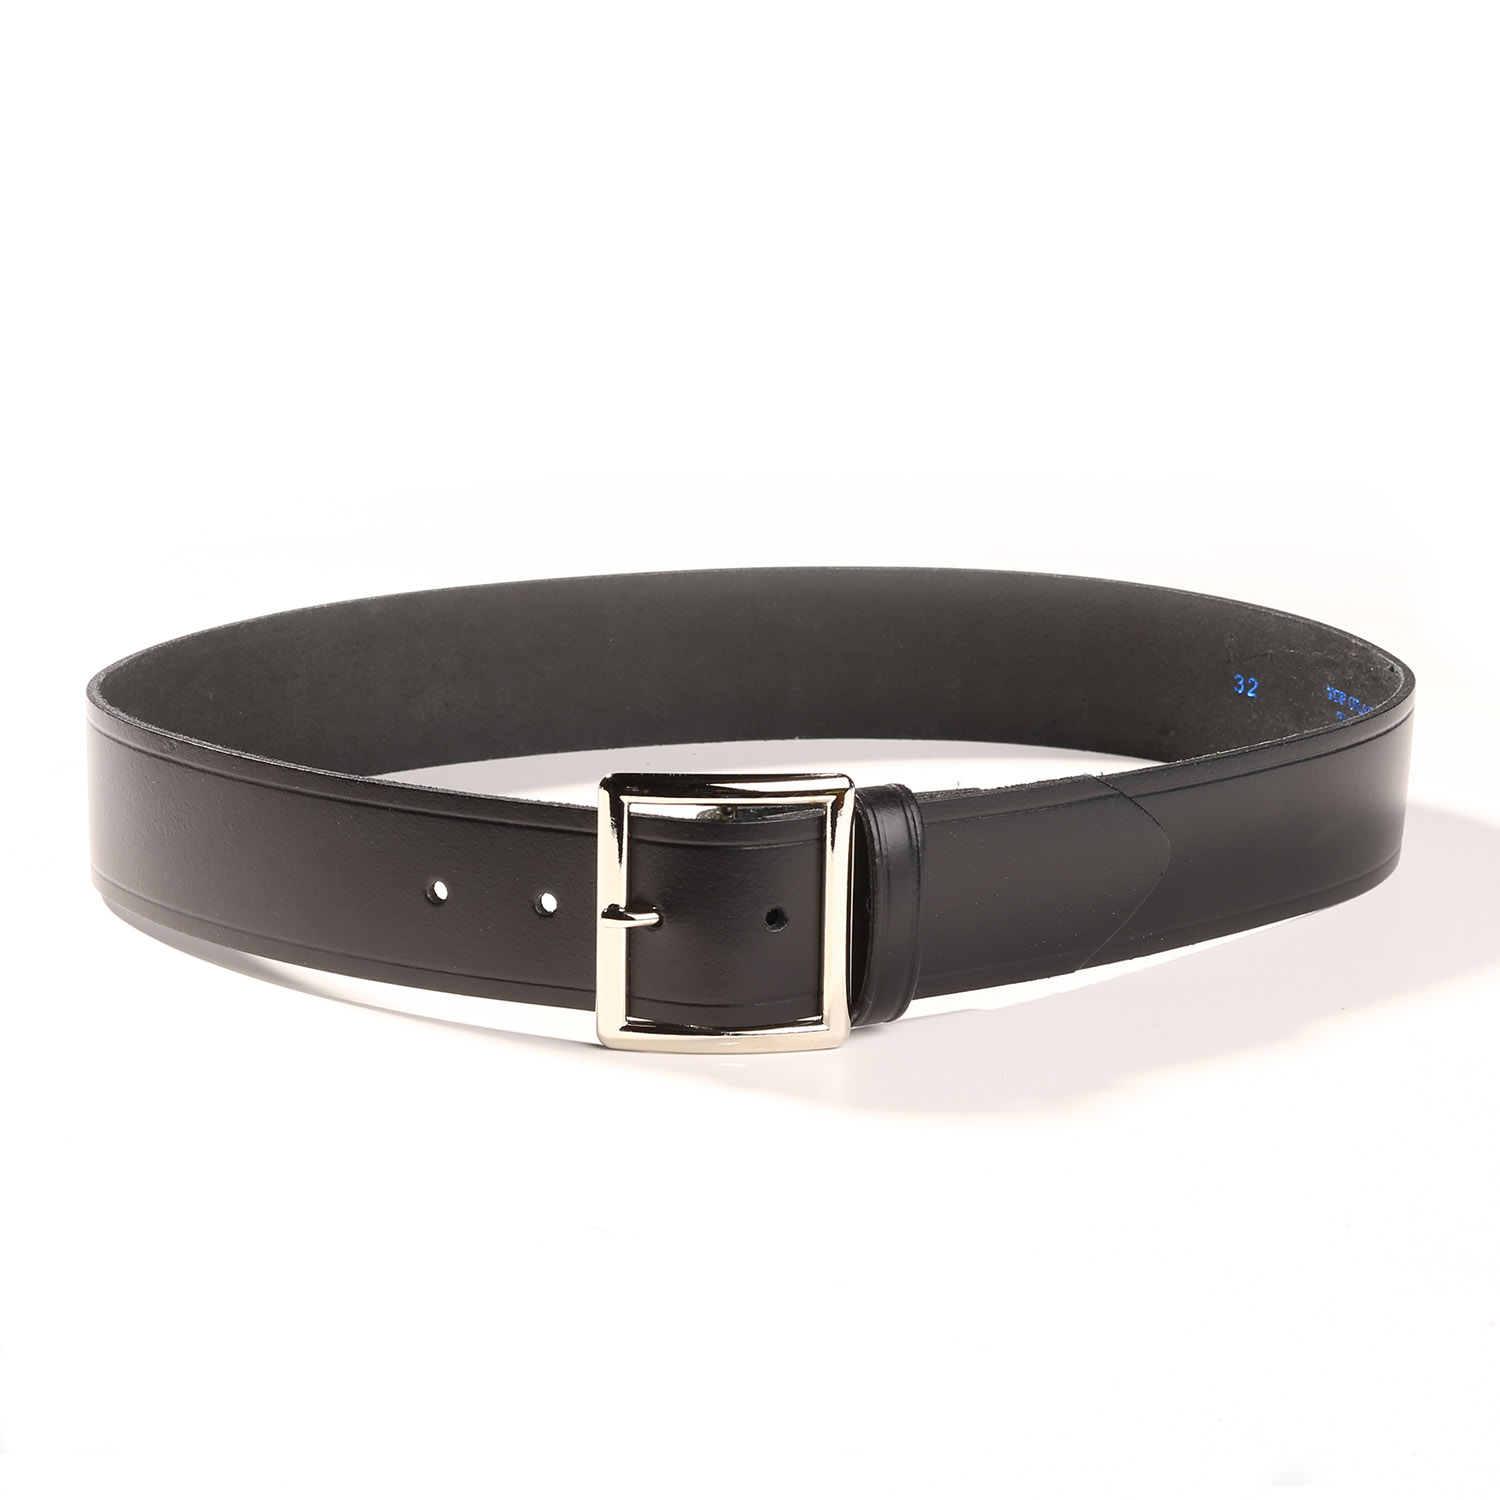 black leather belt 1 3 4 quot wide